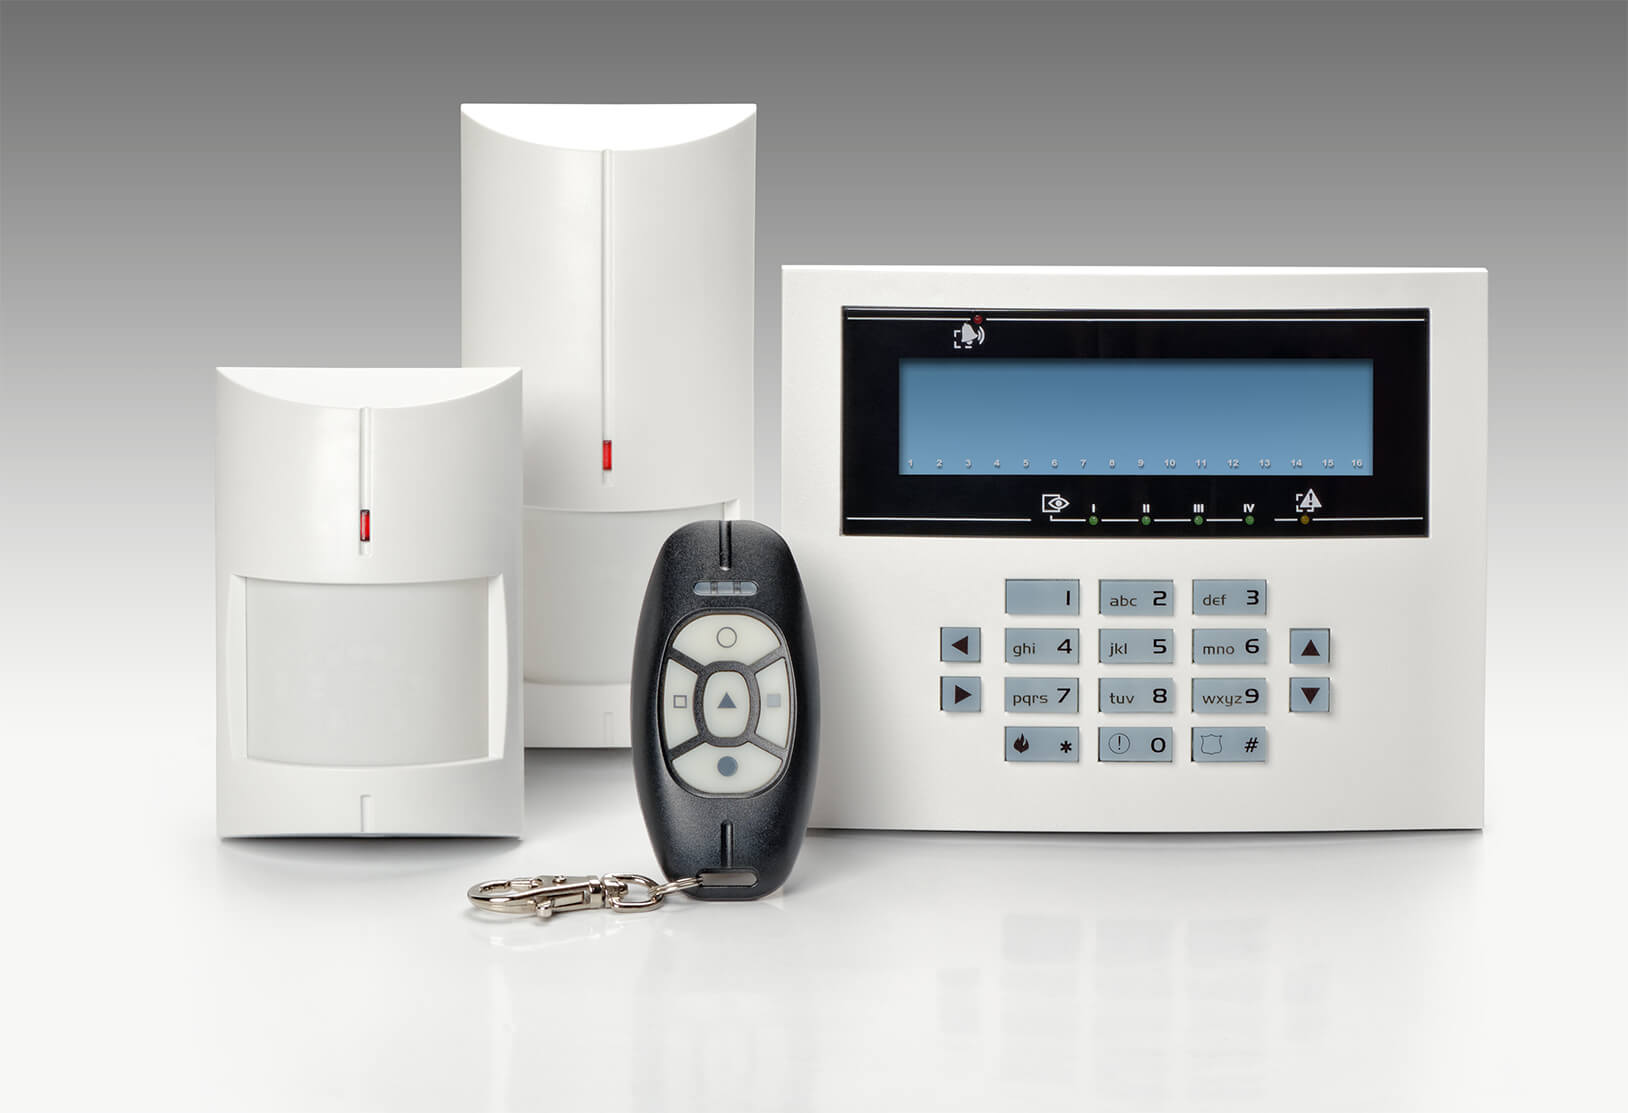 Business & Residential NACOSS Approved Burglar Alarms In Stepney E3 - Local Stepney E3 security company.Call 02078872244 - Dedicated to Safety & Security. Companies, shops and homes ..